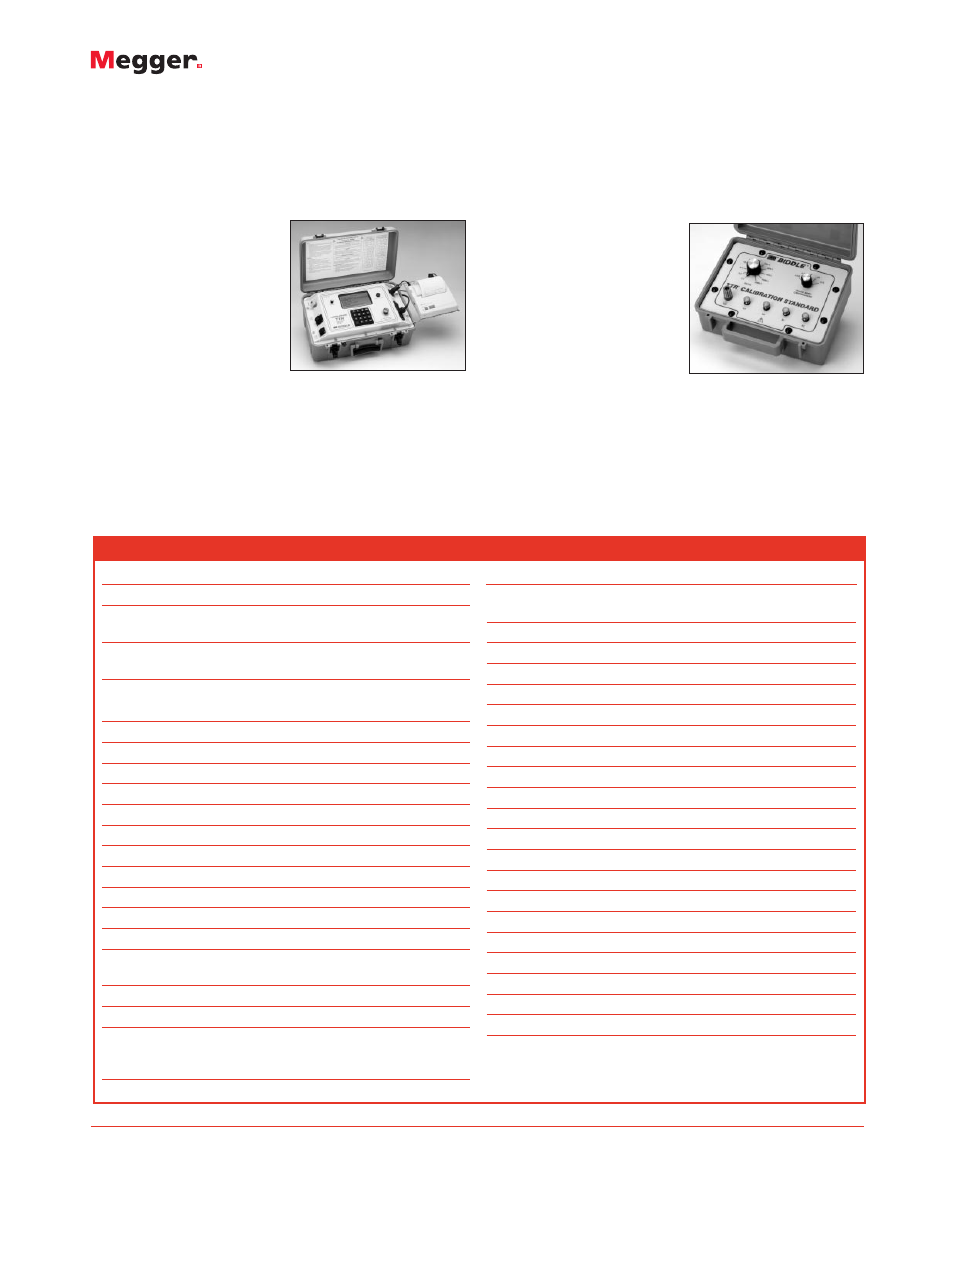 Three Phase Ttr Atec Megger 550503 User Manual Page 4 4